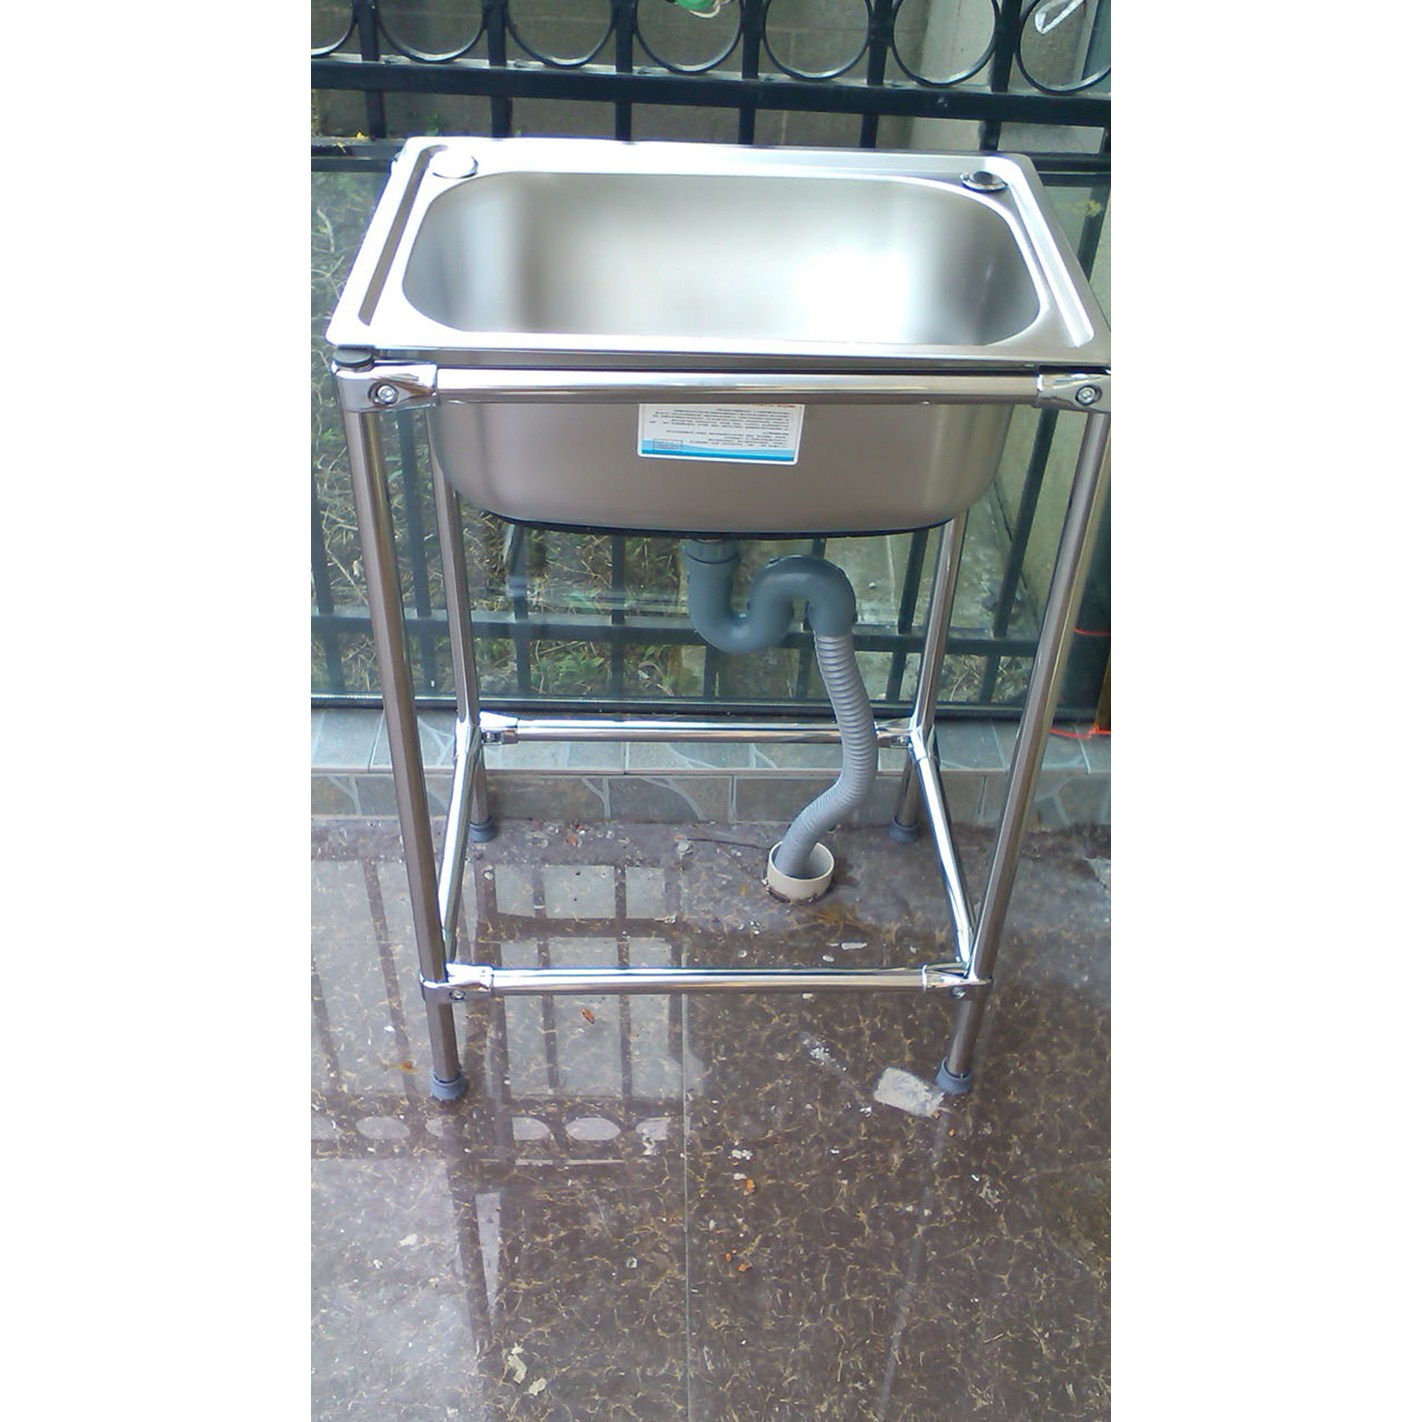 Thickening integral forming stainless steel single groove sink, double trough with custom landing bracket, washing dish basin